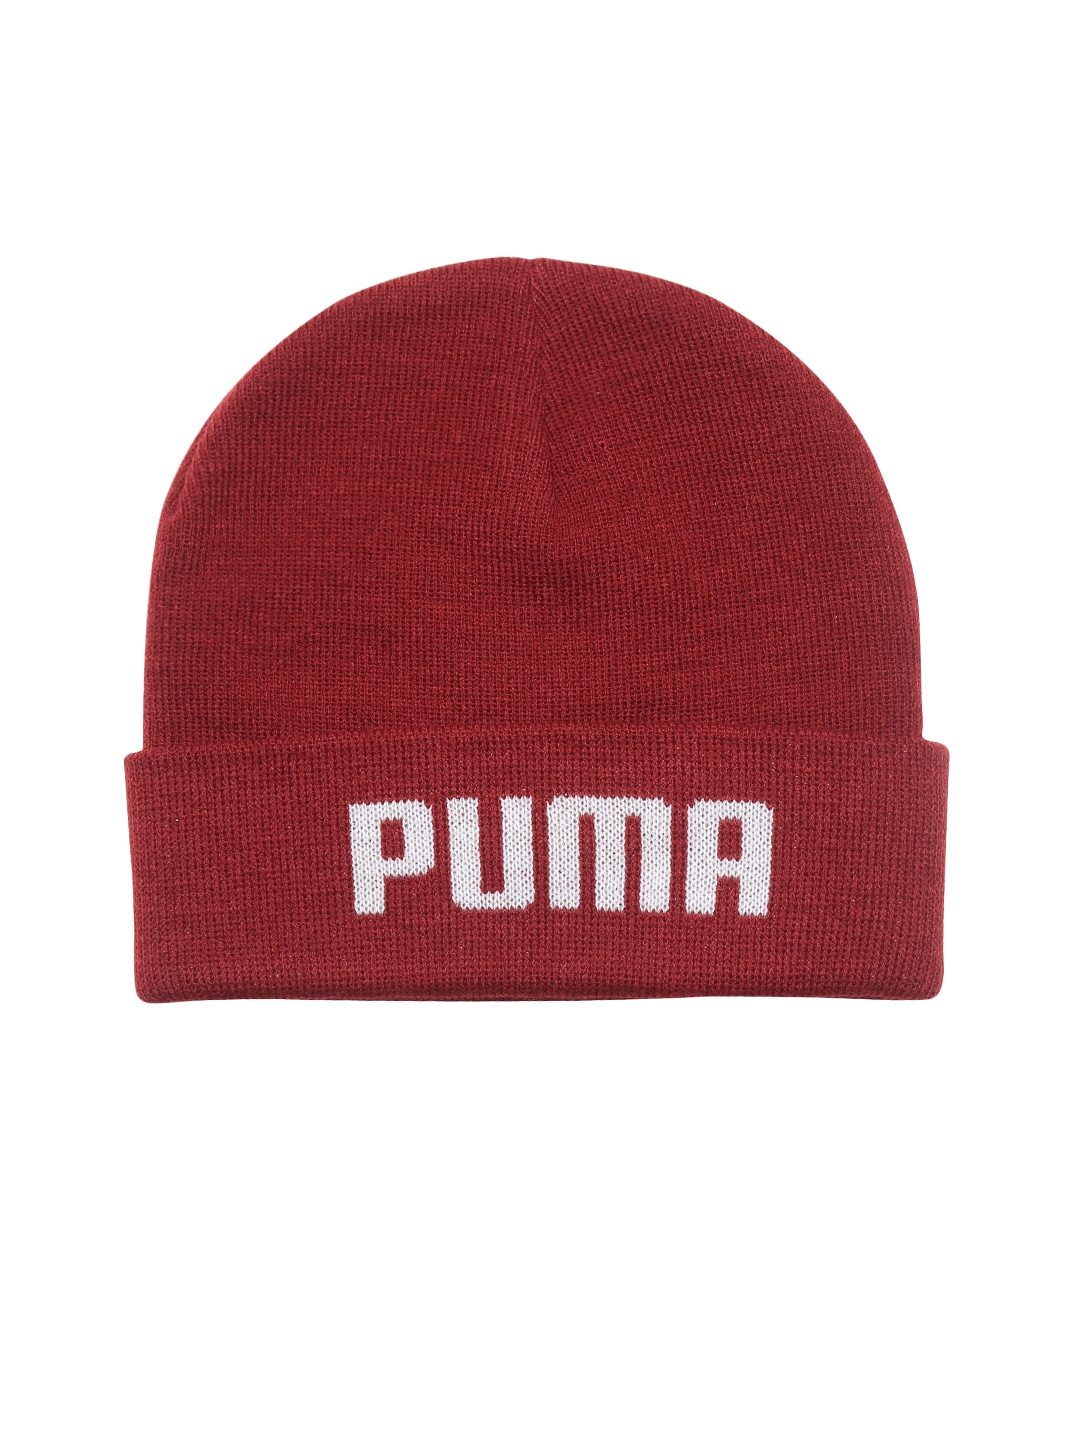 96029ee4067 Puma Red - Buy Puma Red online in India